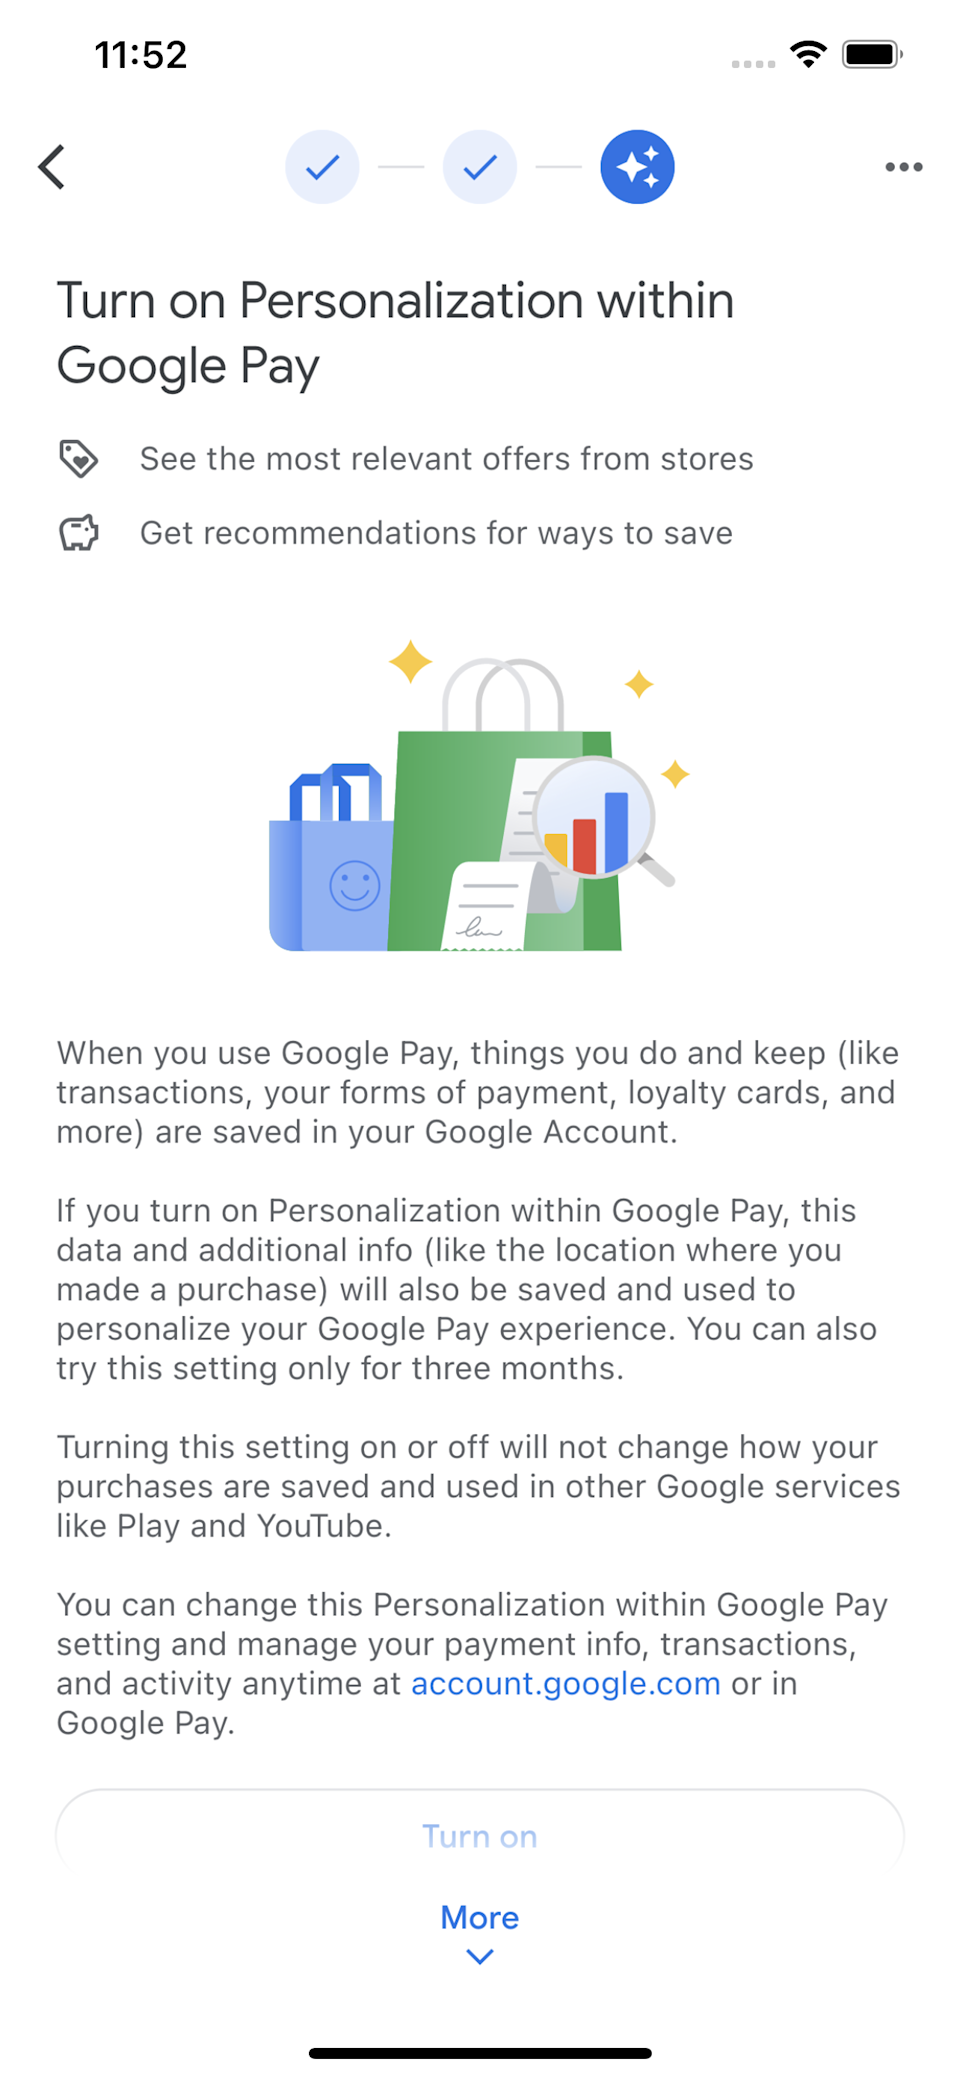 Google Pay's personalization